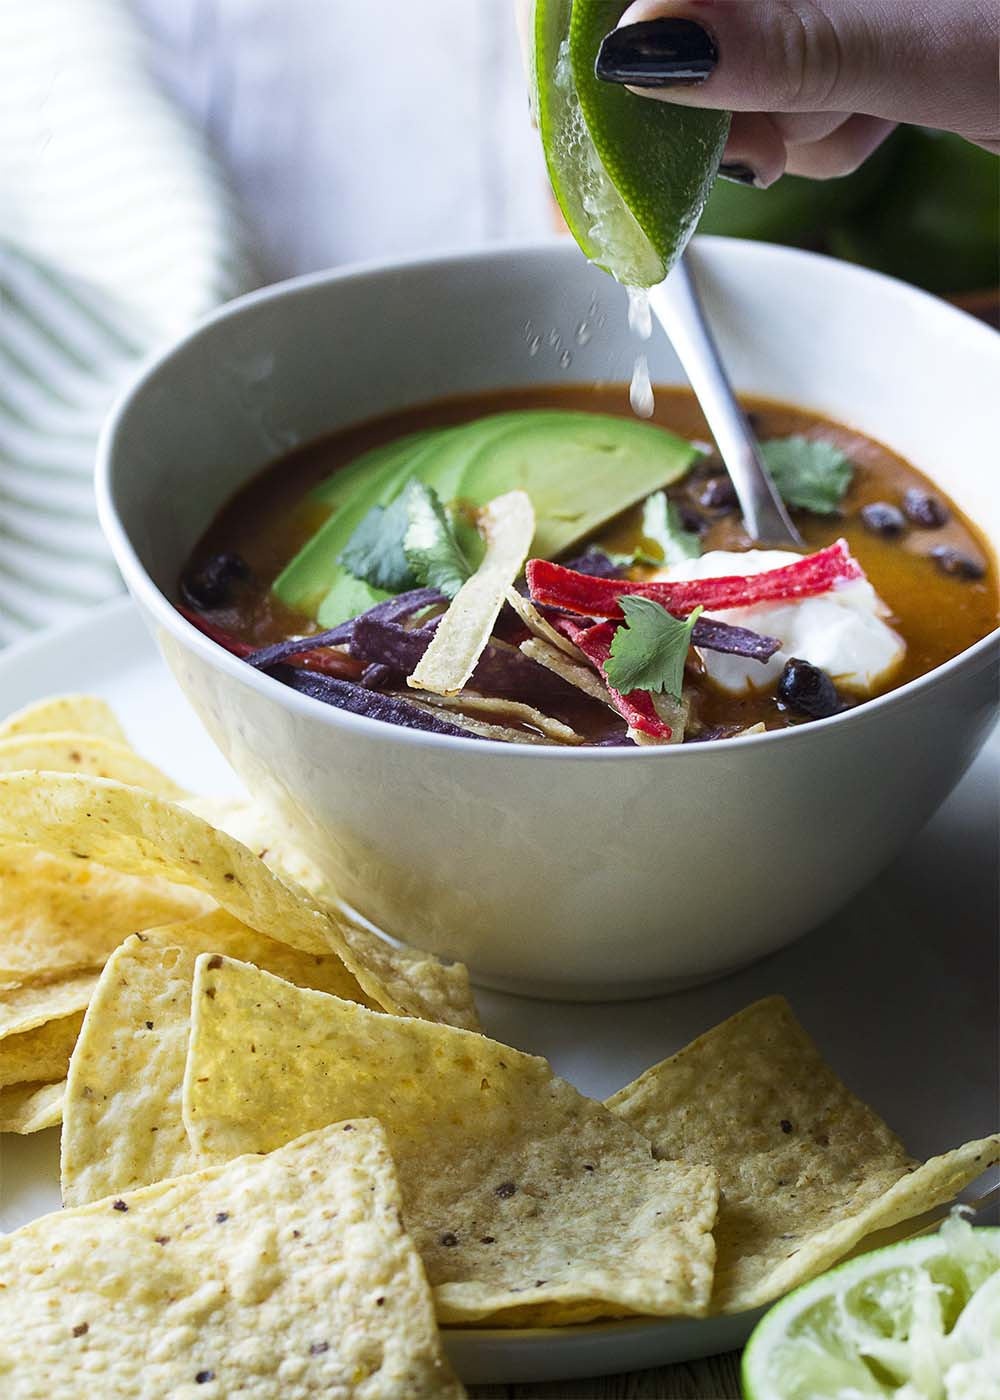 A hand squeezing a lime into a bowl of vegetarian tortilla soup. Soup loaded with toppings and tortilla chips.